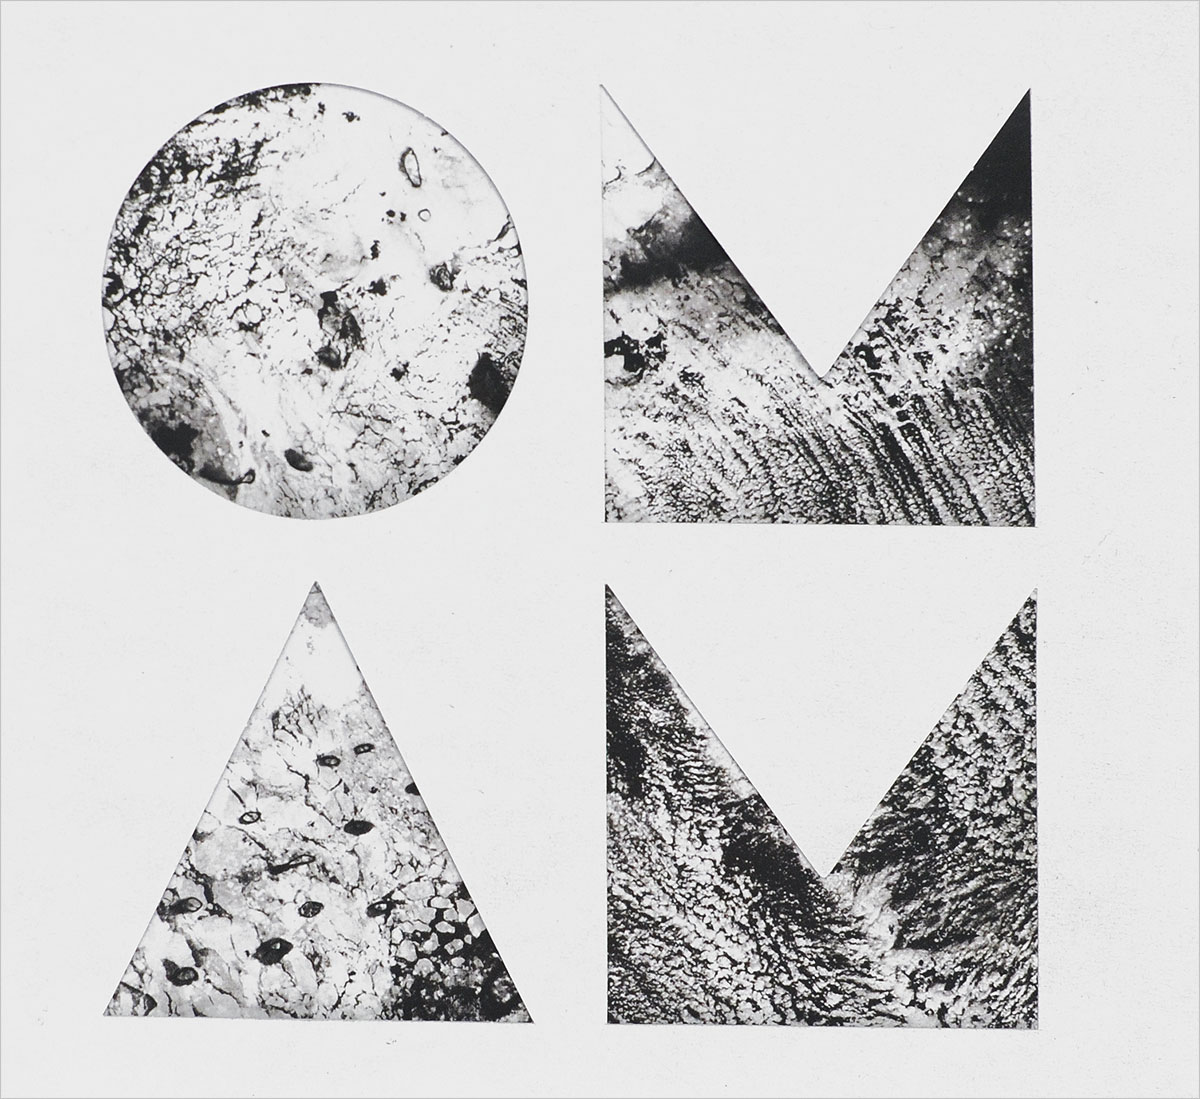 Of Monsters And Men Of Monsters And Men. Beneath The Skin. Deluxe Edition of monsters and men of monsters and men beneath the skin